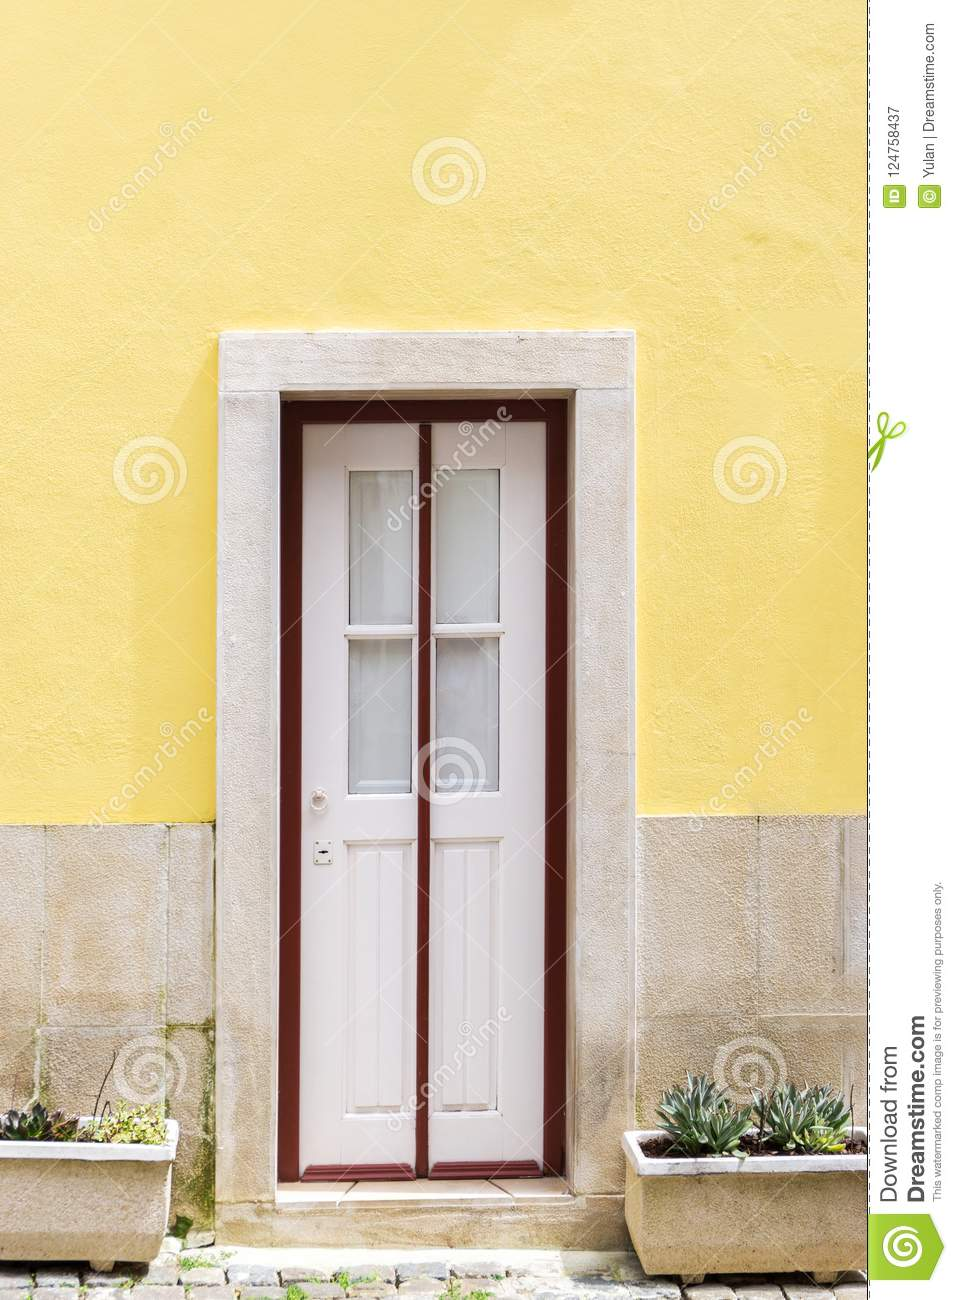 White door with red frame stock image. Image of house - 124758437